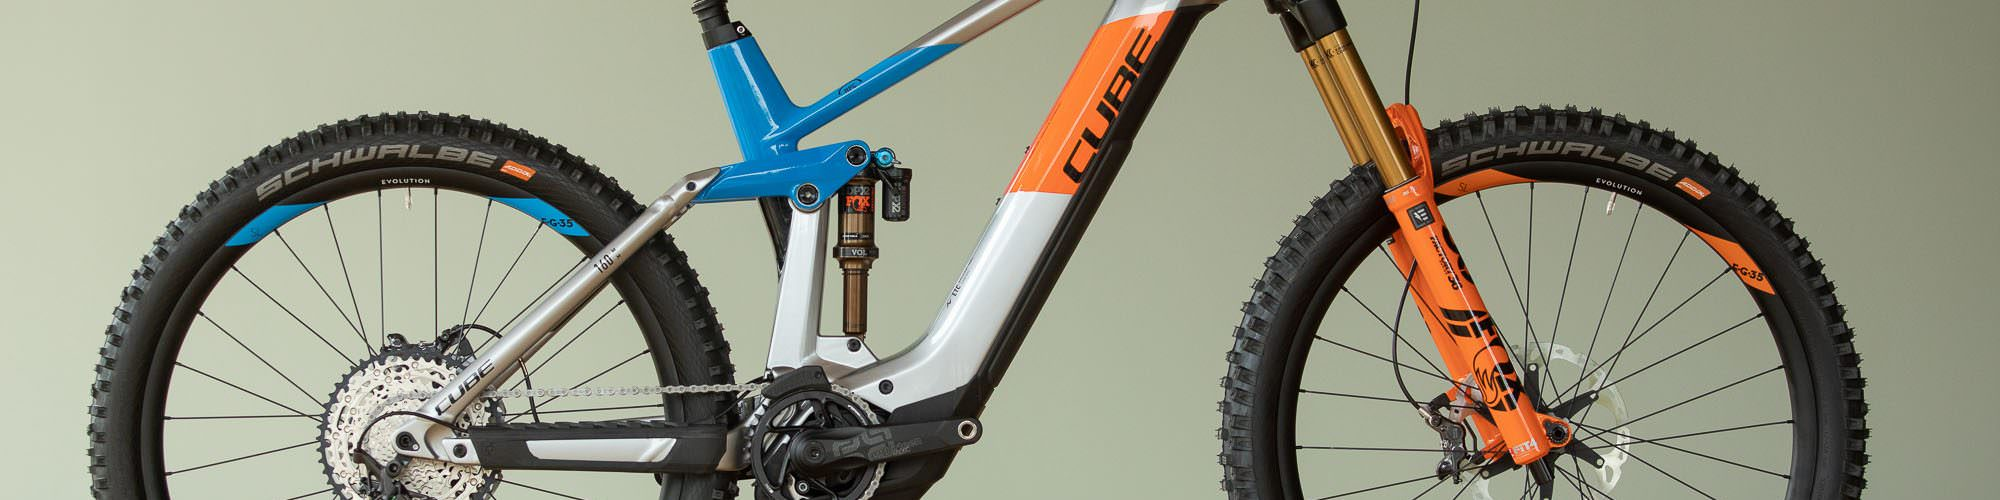 Best Electric Mountain Bike 2020.Cube 2020 Emtb Range News All The Highlights For The Next